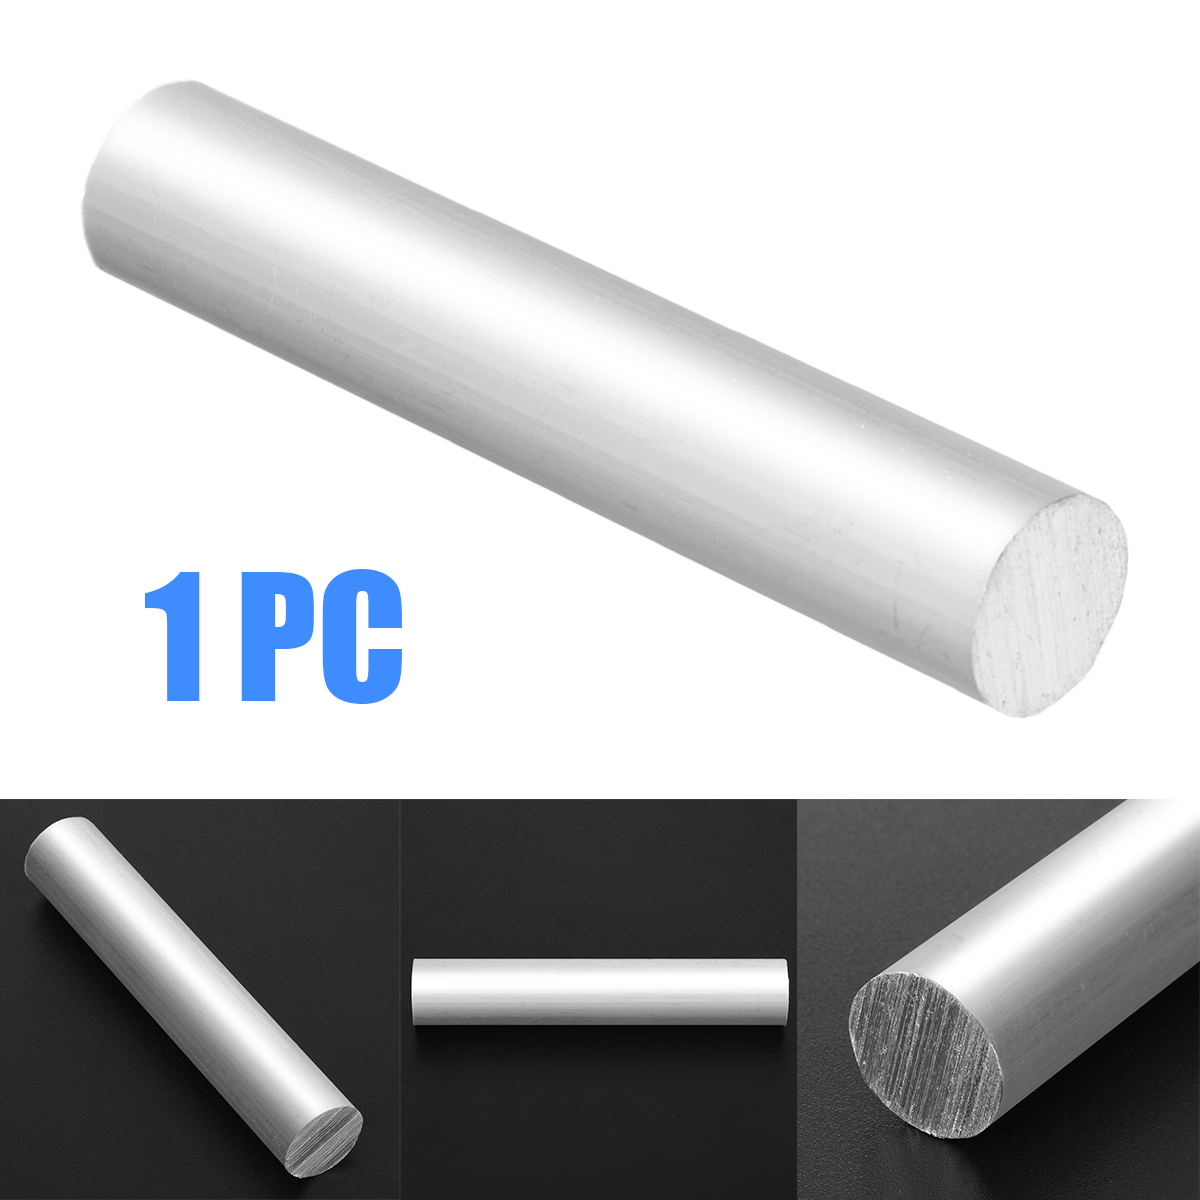 1pc High Purity Magnesium Metal Mg Rod 99.99% Mg Magnesium Metal Rod Welding Soldering Rod Bar 16mm X 9cm